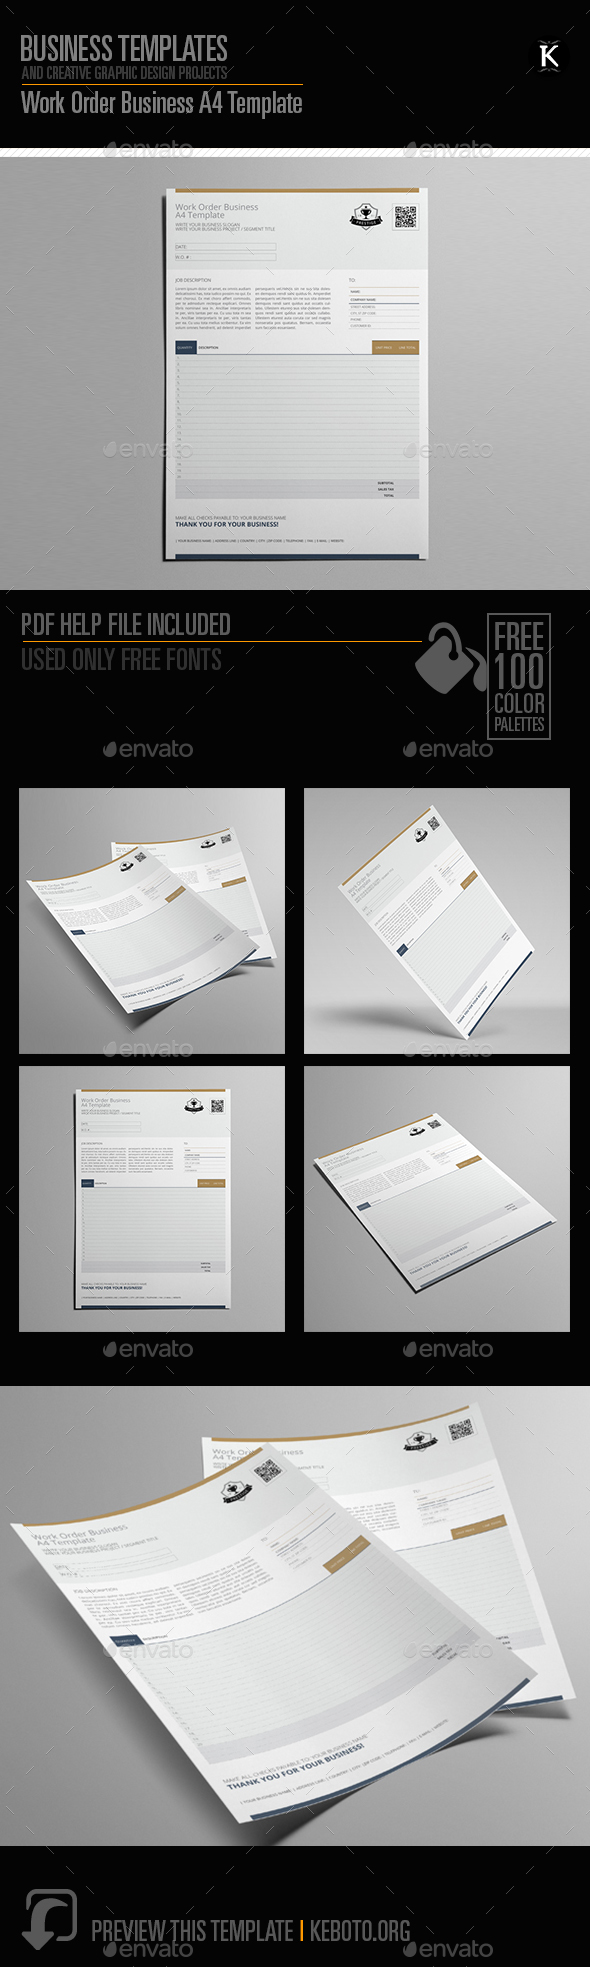 Work Order Business A4 Template - Miscellaneous Print Templates